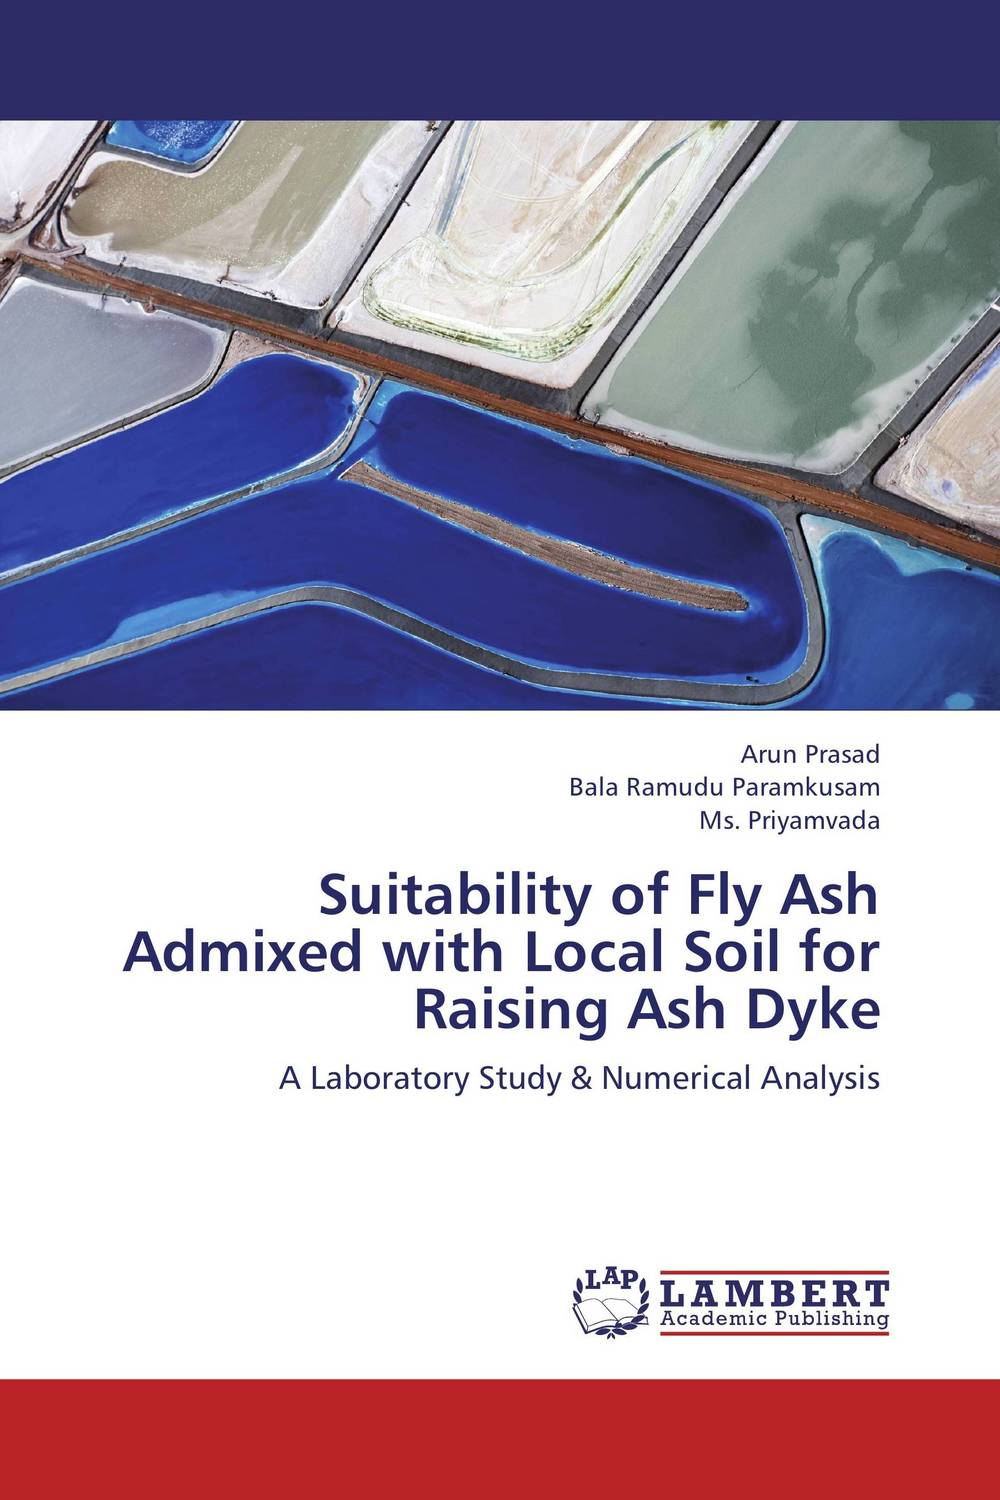 Suitability of Fly Ash Admixed with Local Soil for Raising Ash Dyke van dyke parks van dyke parks clang of the yankee reaper